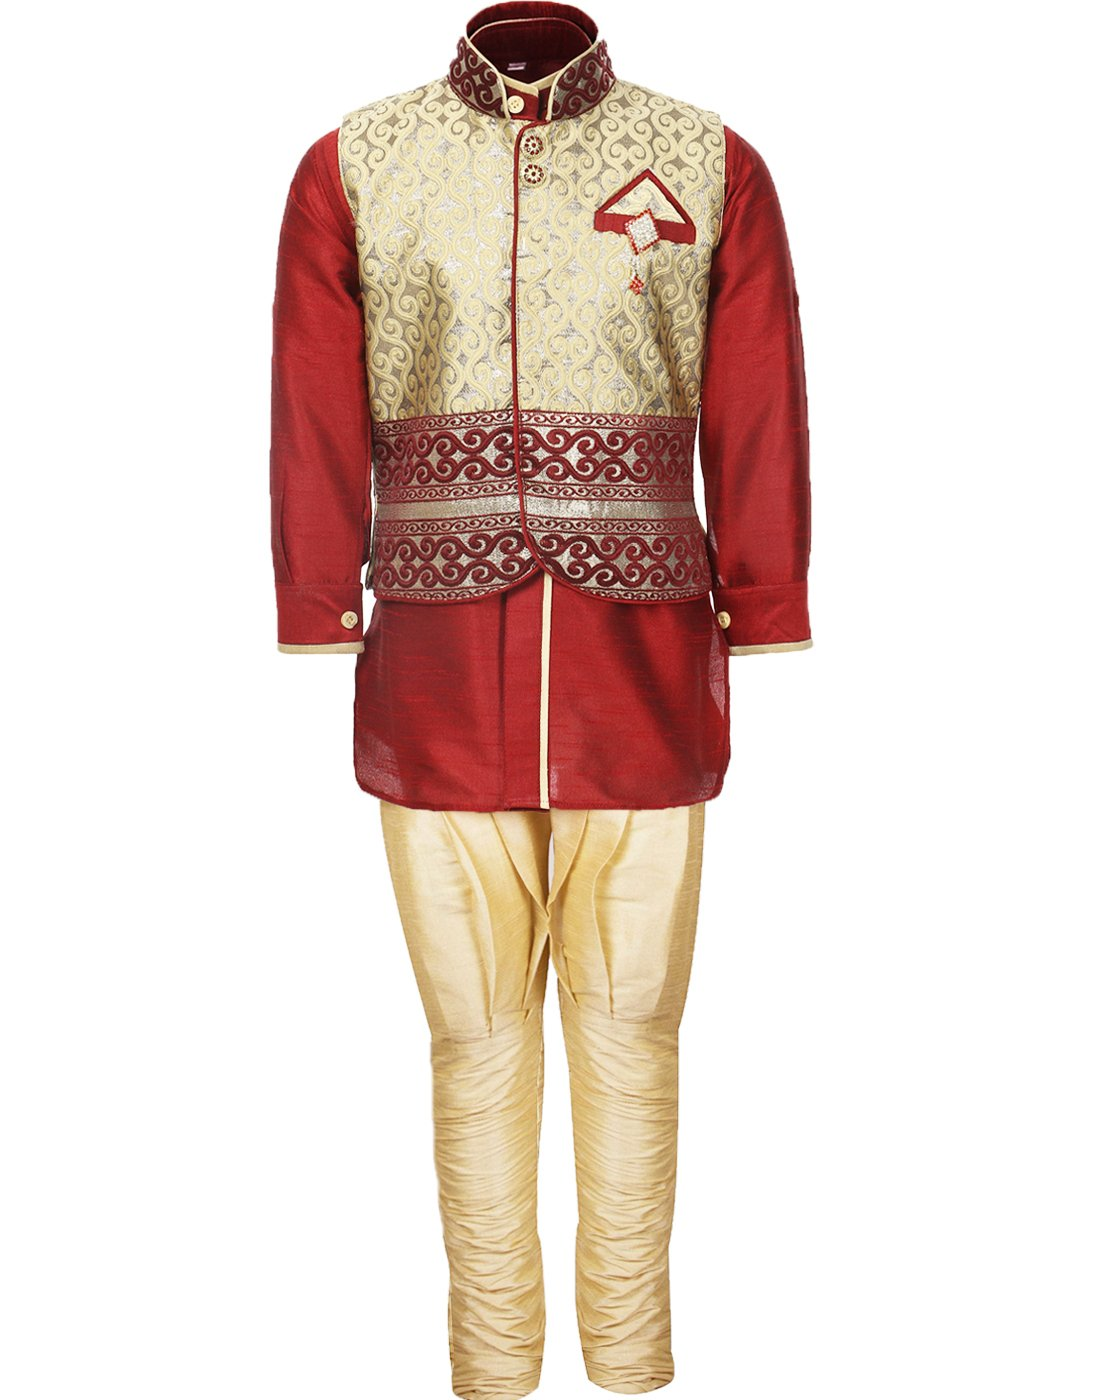 AJ Dezines Kids Indian Wear Bollywood Style Kurta Pyjama Waistcoat for Baby Boys 636-BABY-$P